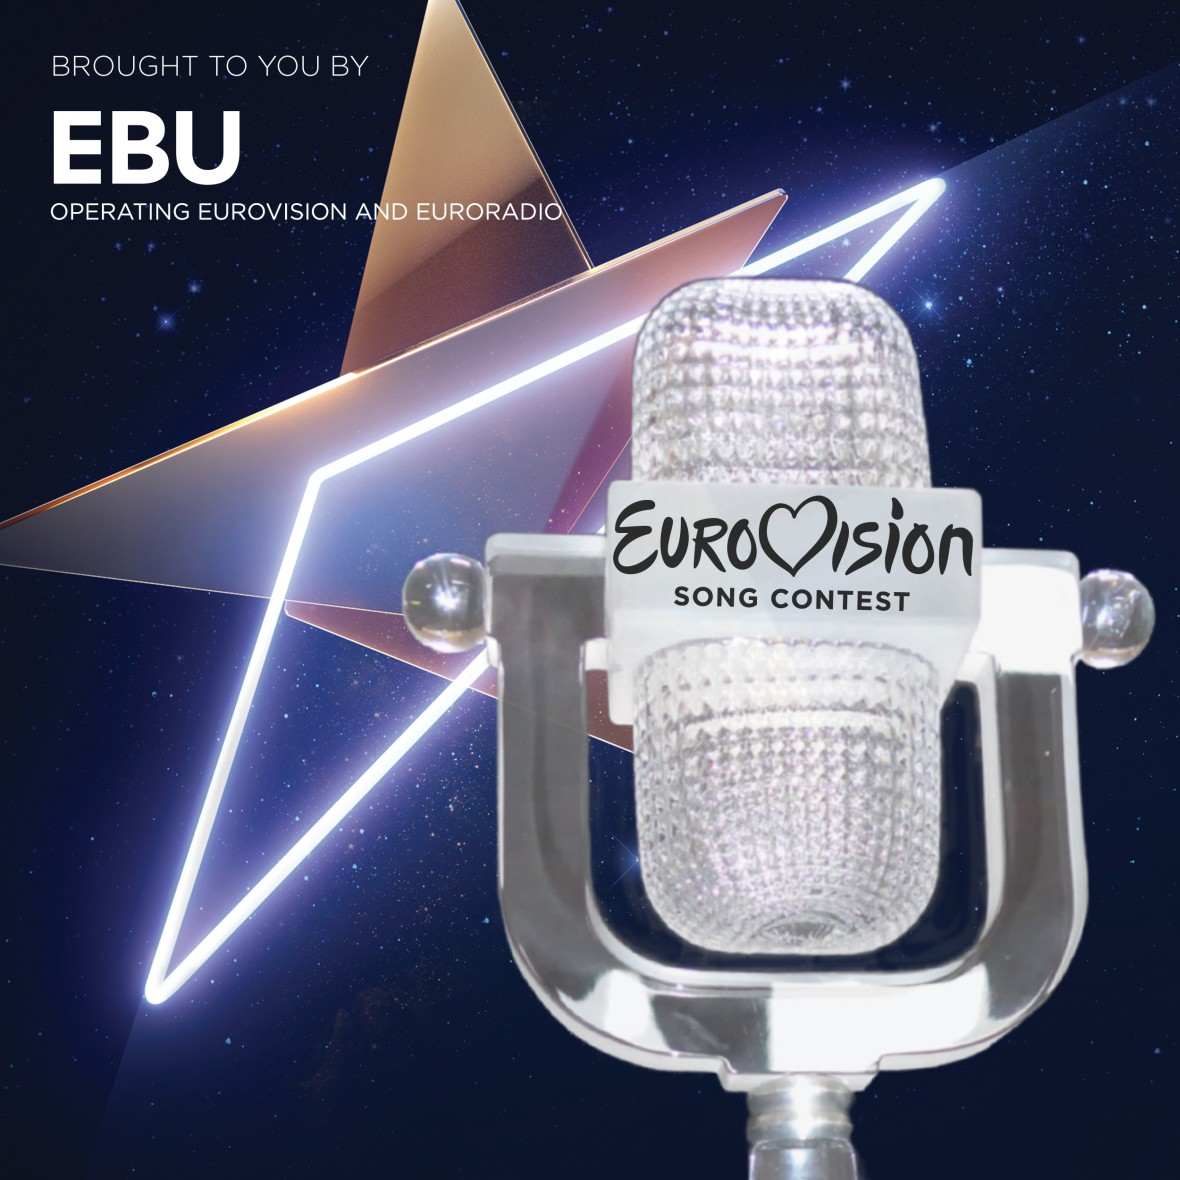 Postcast_artwork_EBU-logo-with-tagline.png